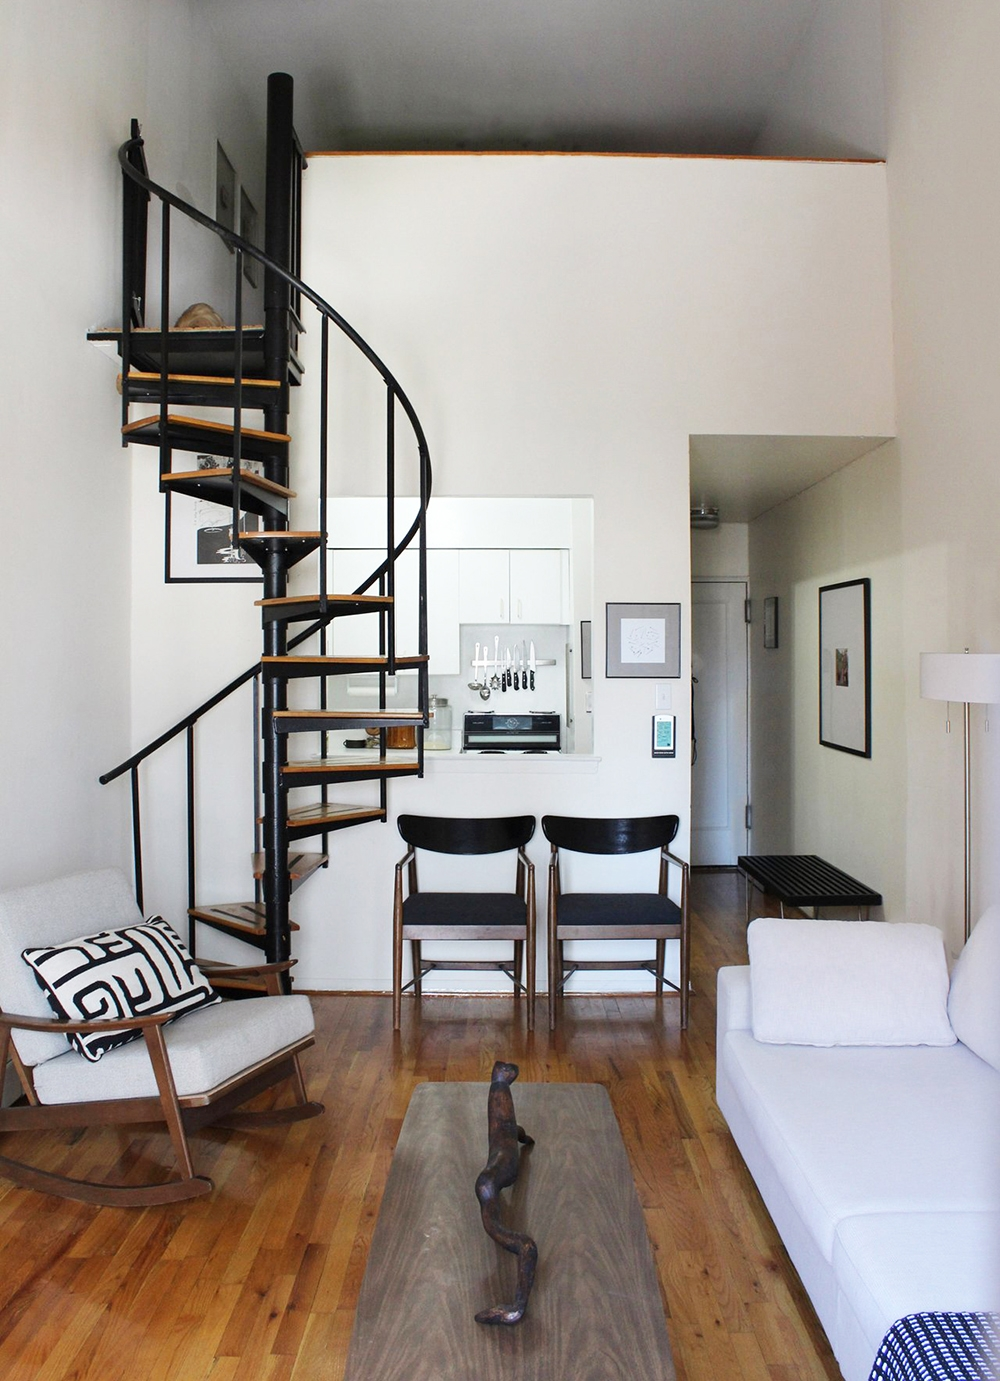 Space Saving Staircases Room For Tuesday Blog | Small Stairs For Small Spaces | Design | Small Apartment | Small Living Area | Compact | Tiny House